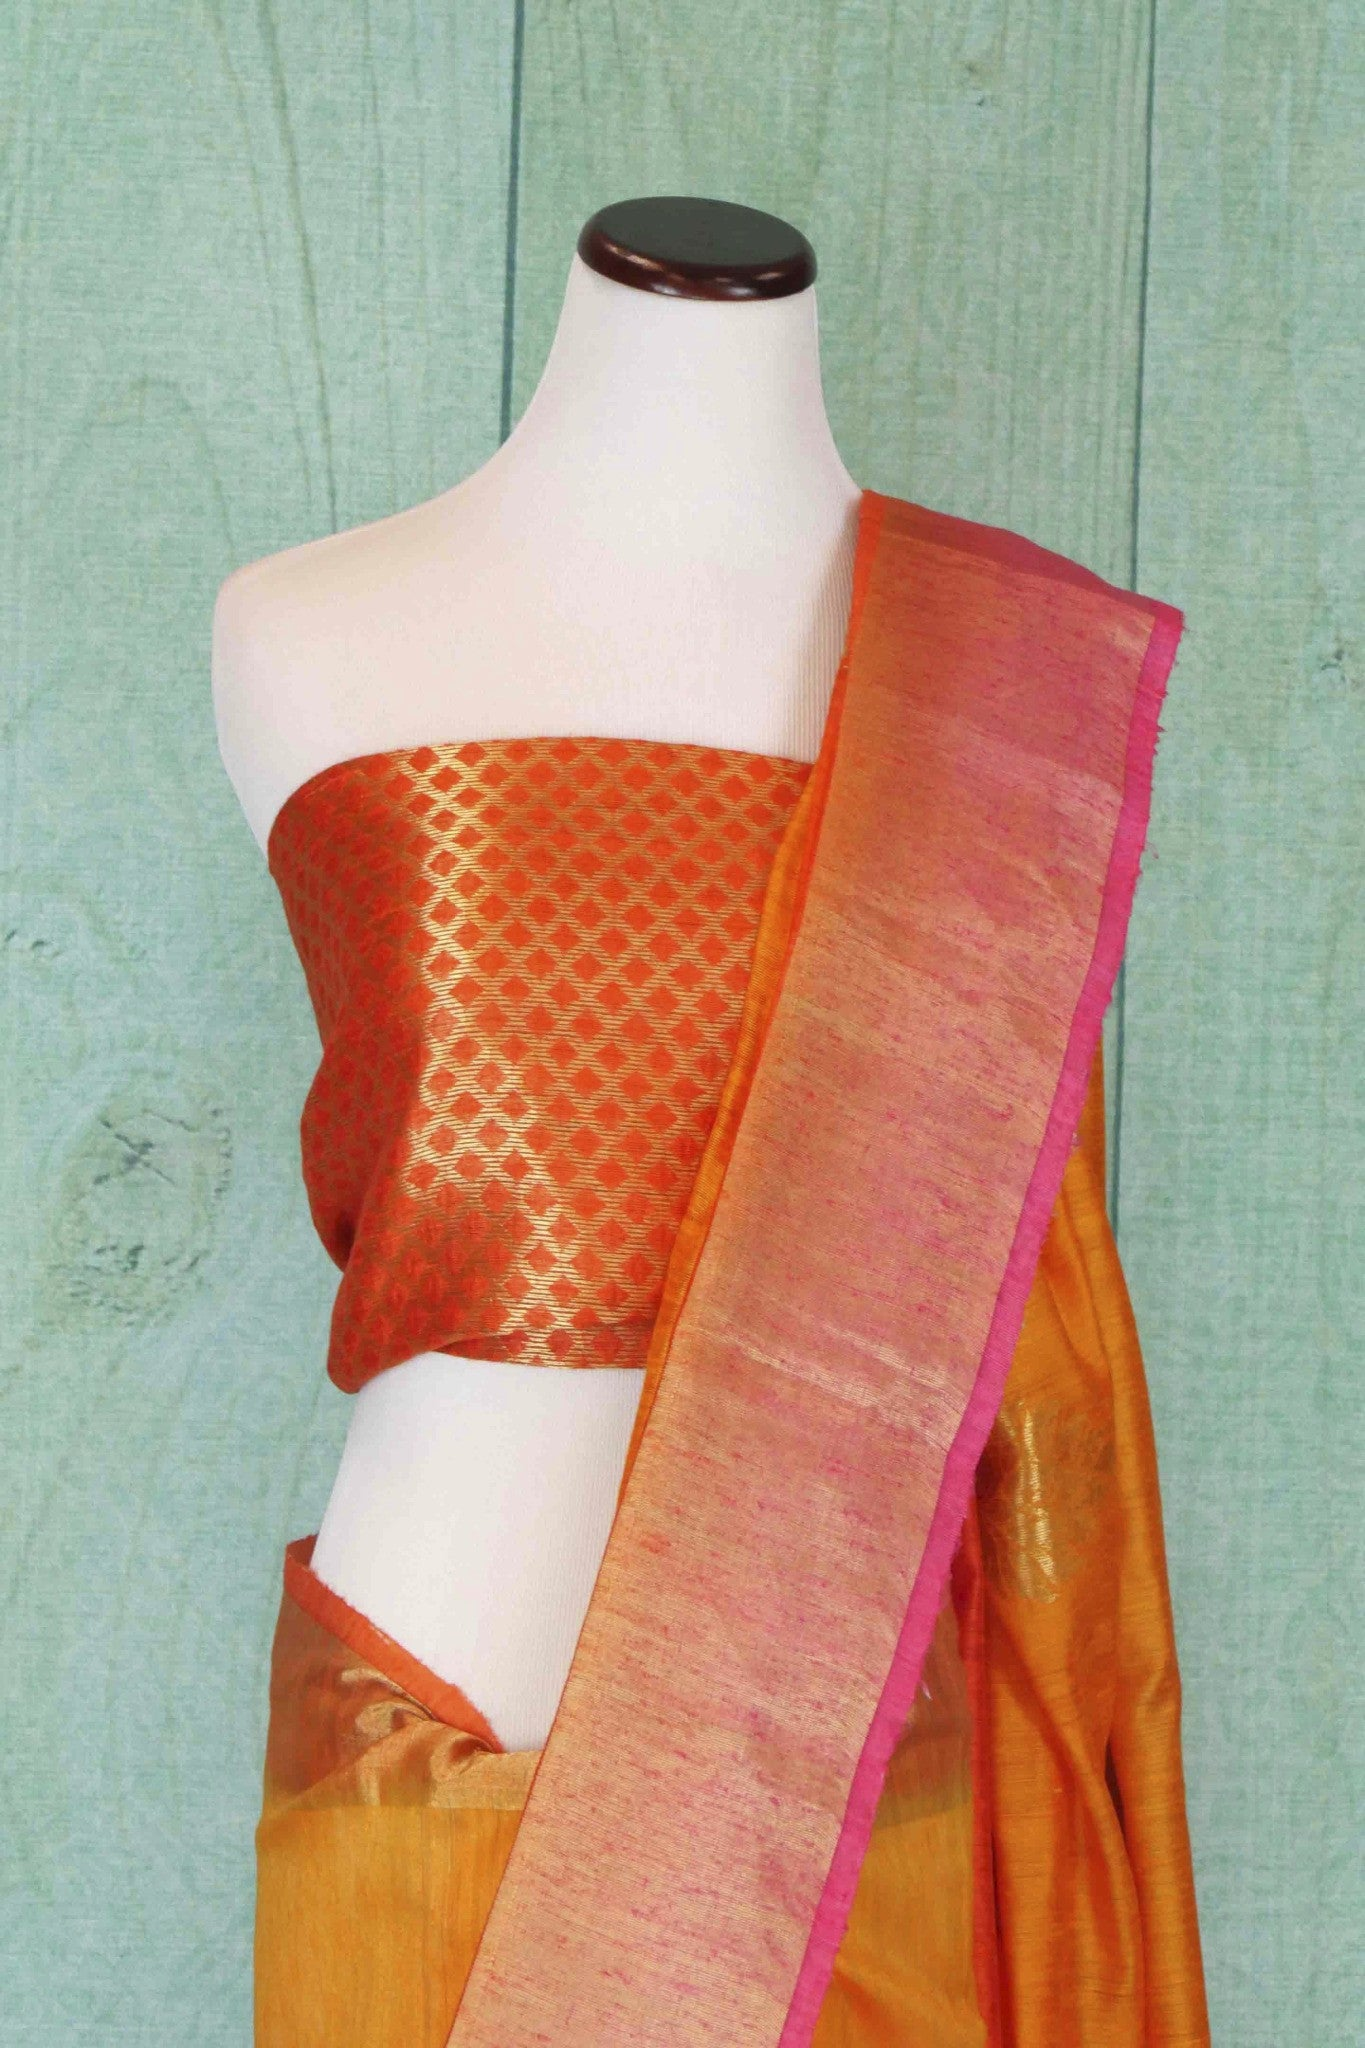 90C181 Shaded orange and yellow, matka ghicha benarasi saree, with a soft gold border and traditional motifs. Buy this Indian saree, ideal for ethnic festivities, online in USA at Pure Elegance.